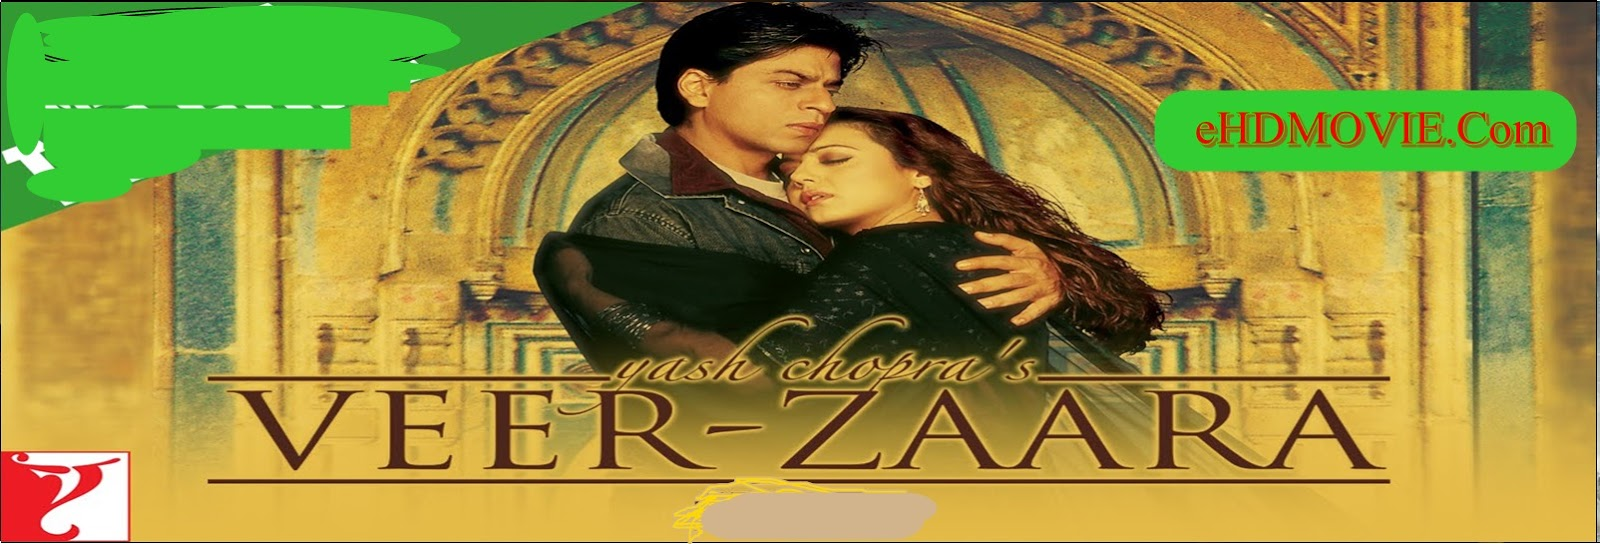 Veer-Zaara 2004 Full Movie Hindi 720p - HEVC - 480p ORG BRRip 550MB - 750MB - 1.5GB ESubs Free Download